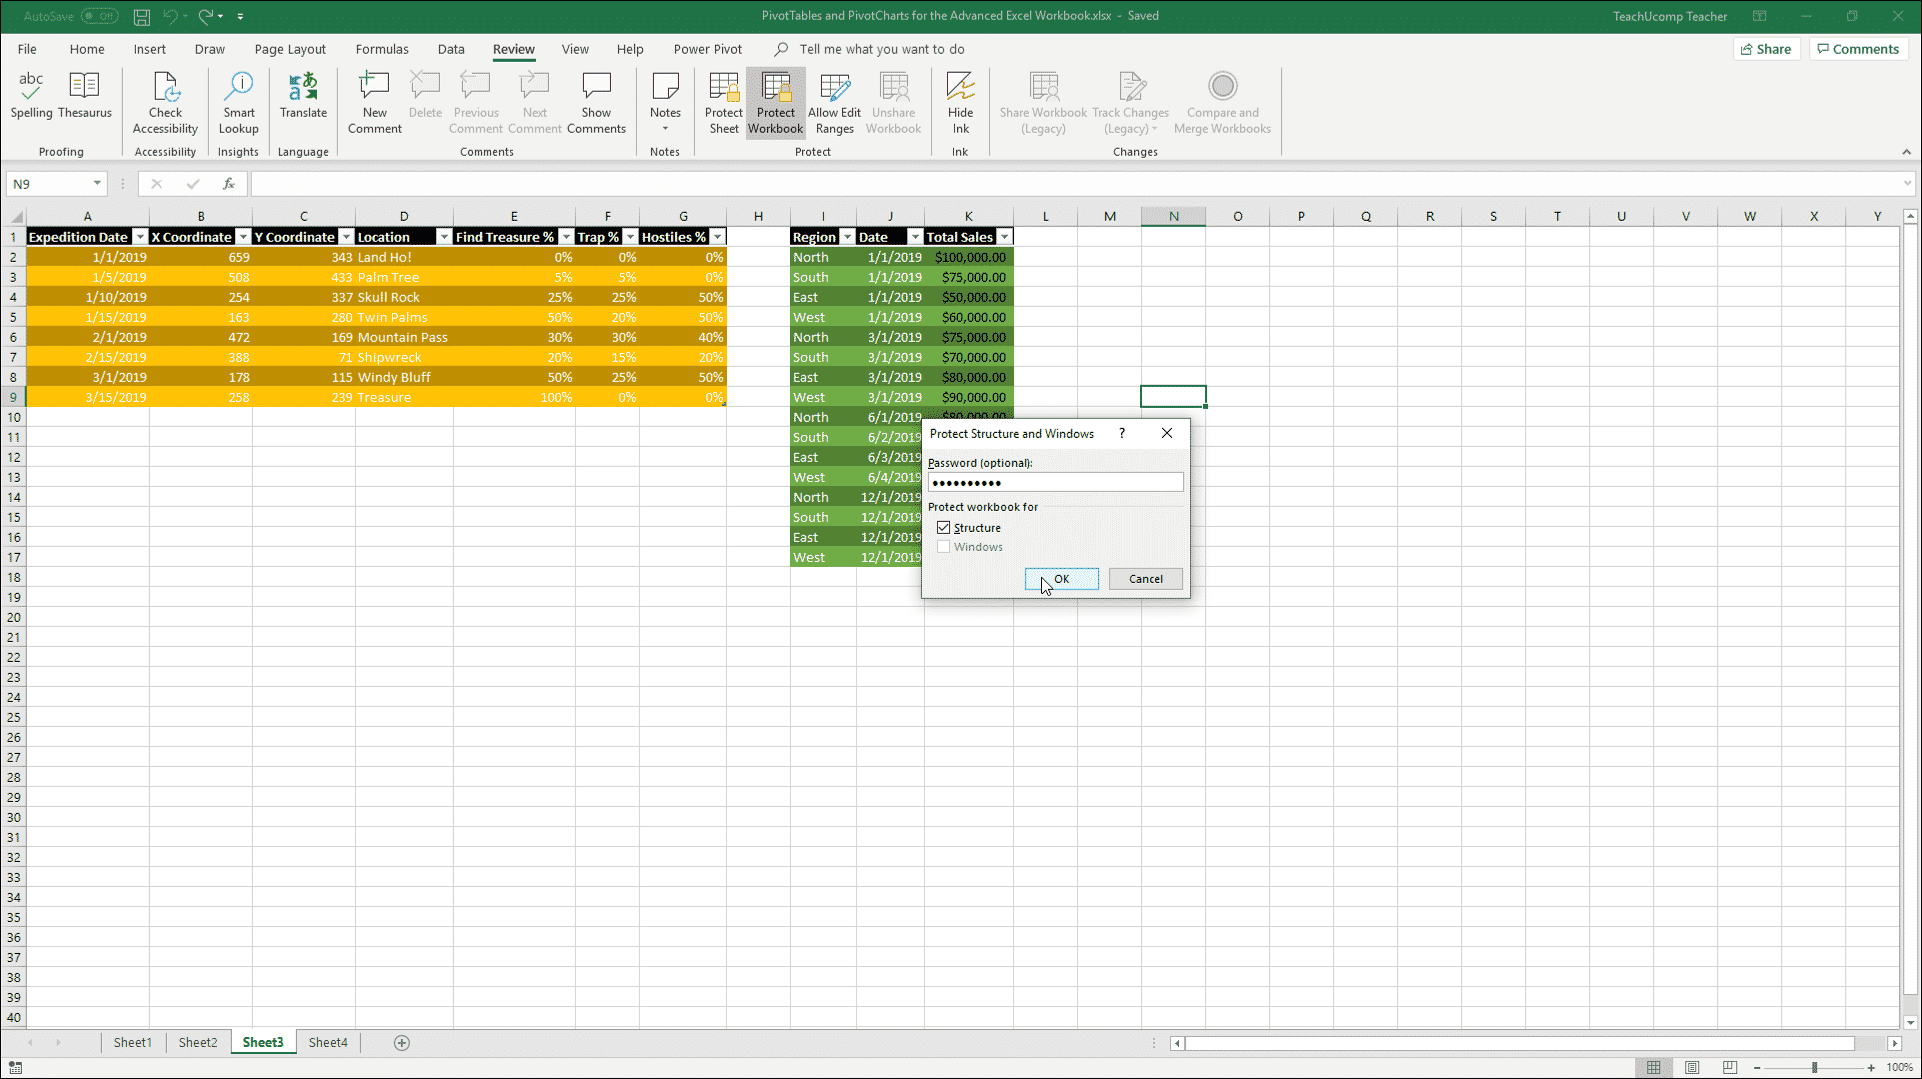 workbook protection in excel- instructions